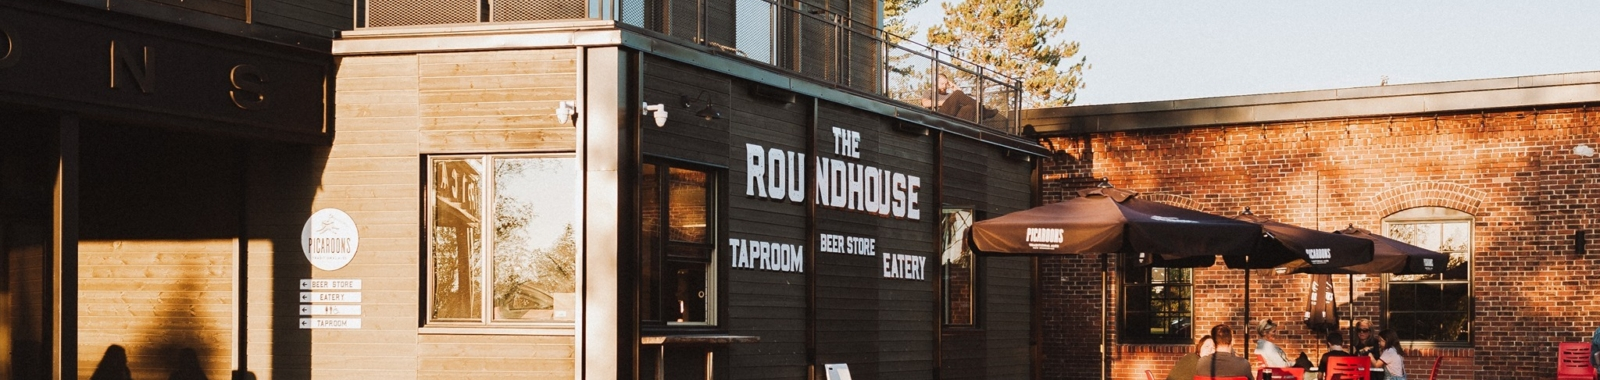 Picaroons Roundhouse Fredericton header